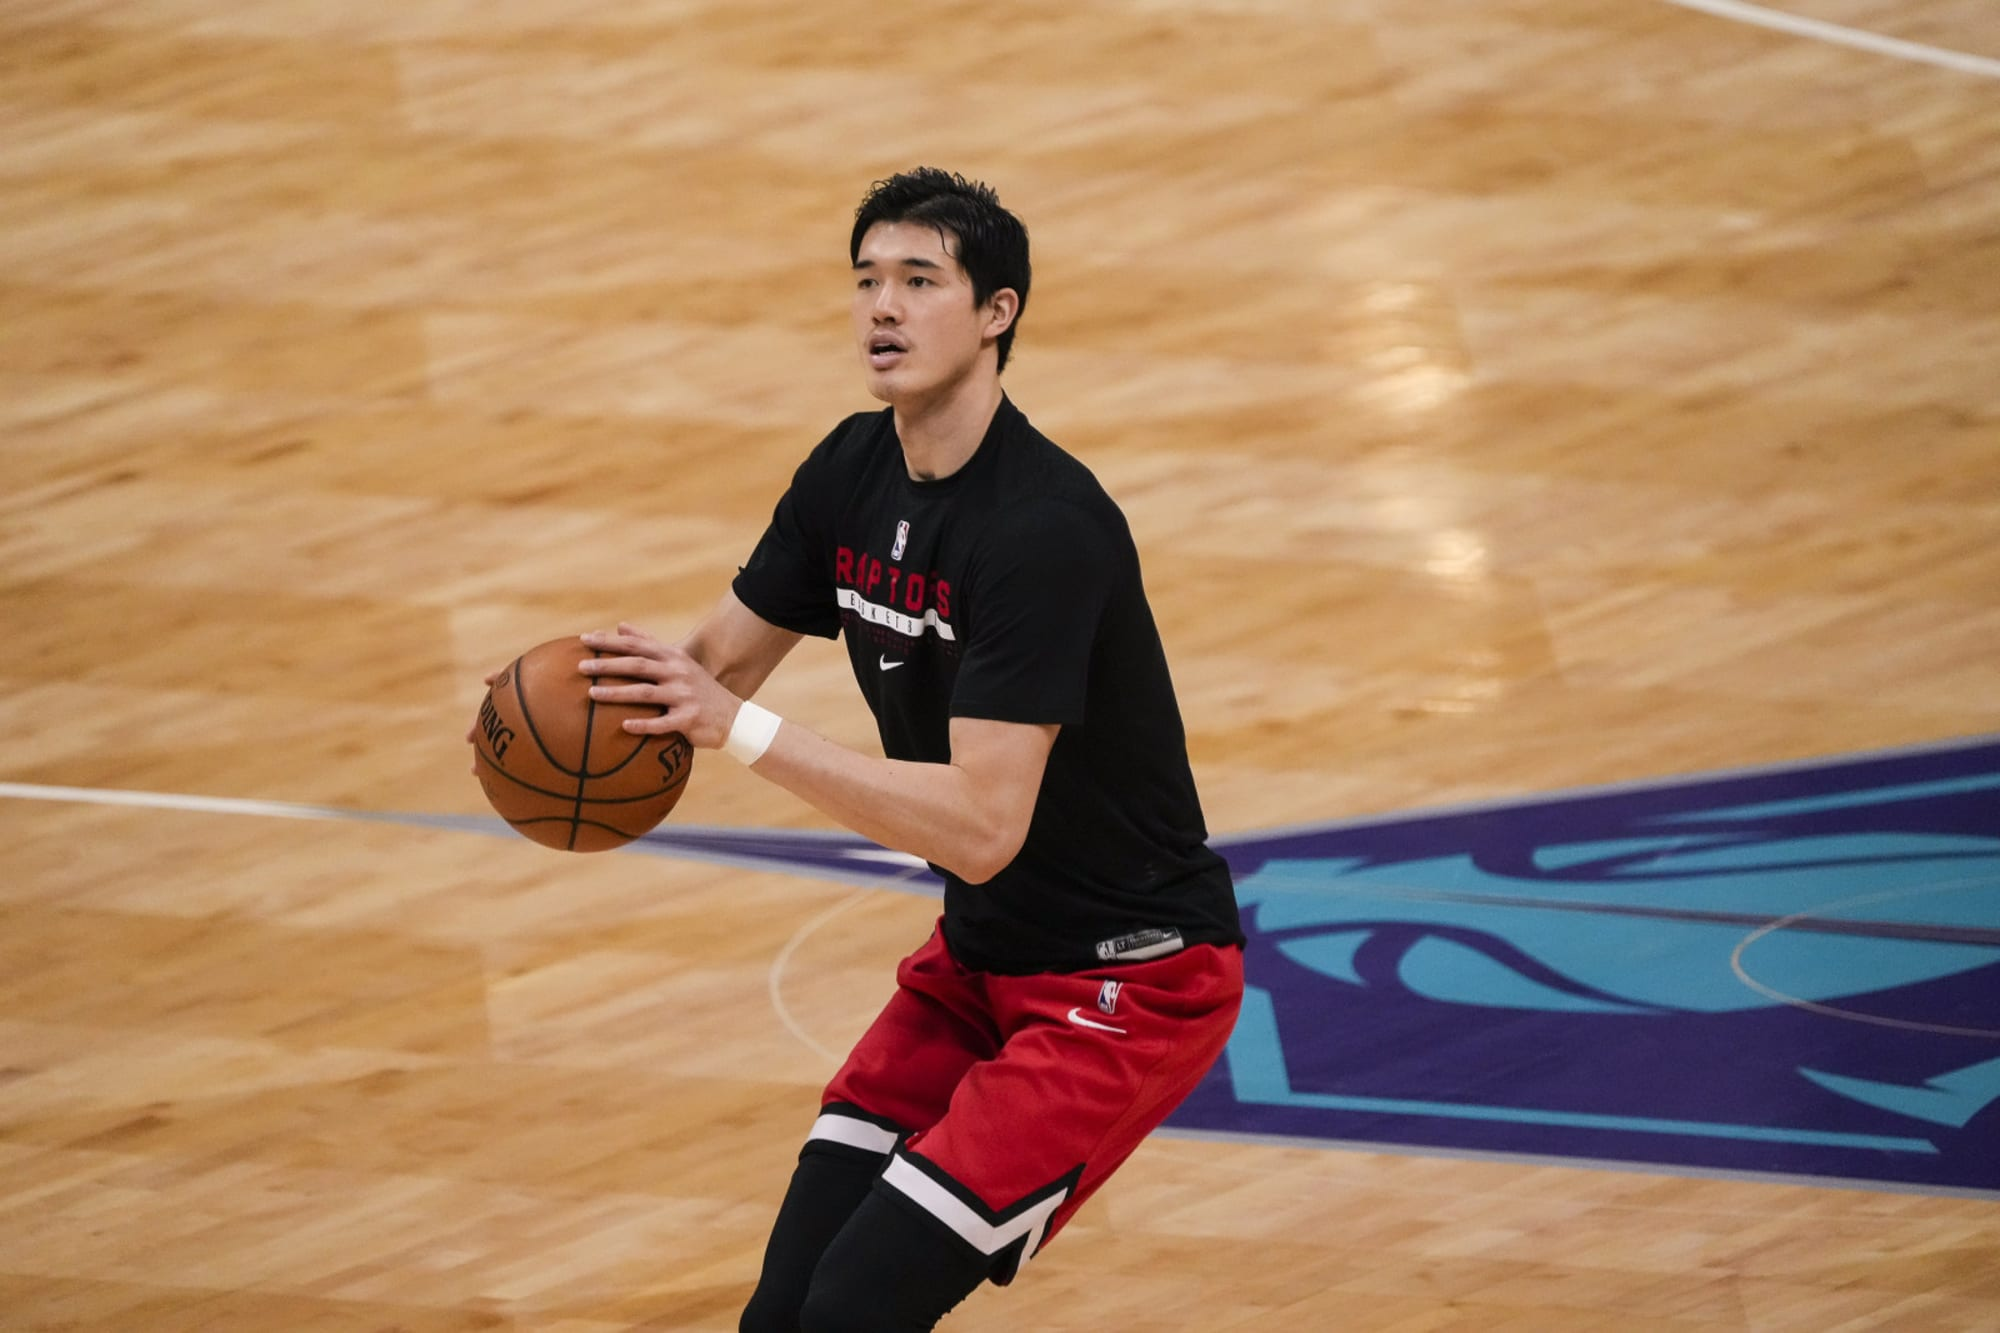 Toronto Raptors: Yuta Watanabe signing an NBA deal speaks to his fit long-term